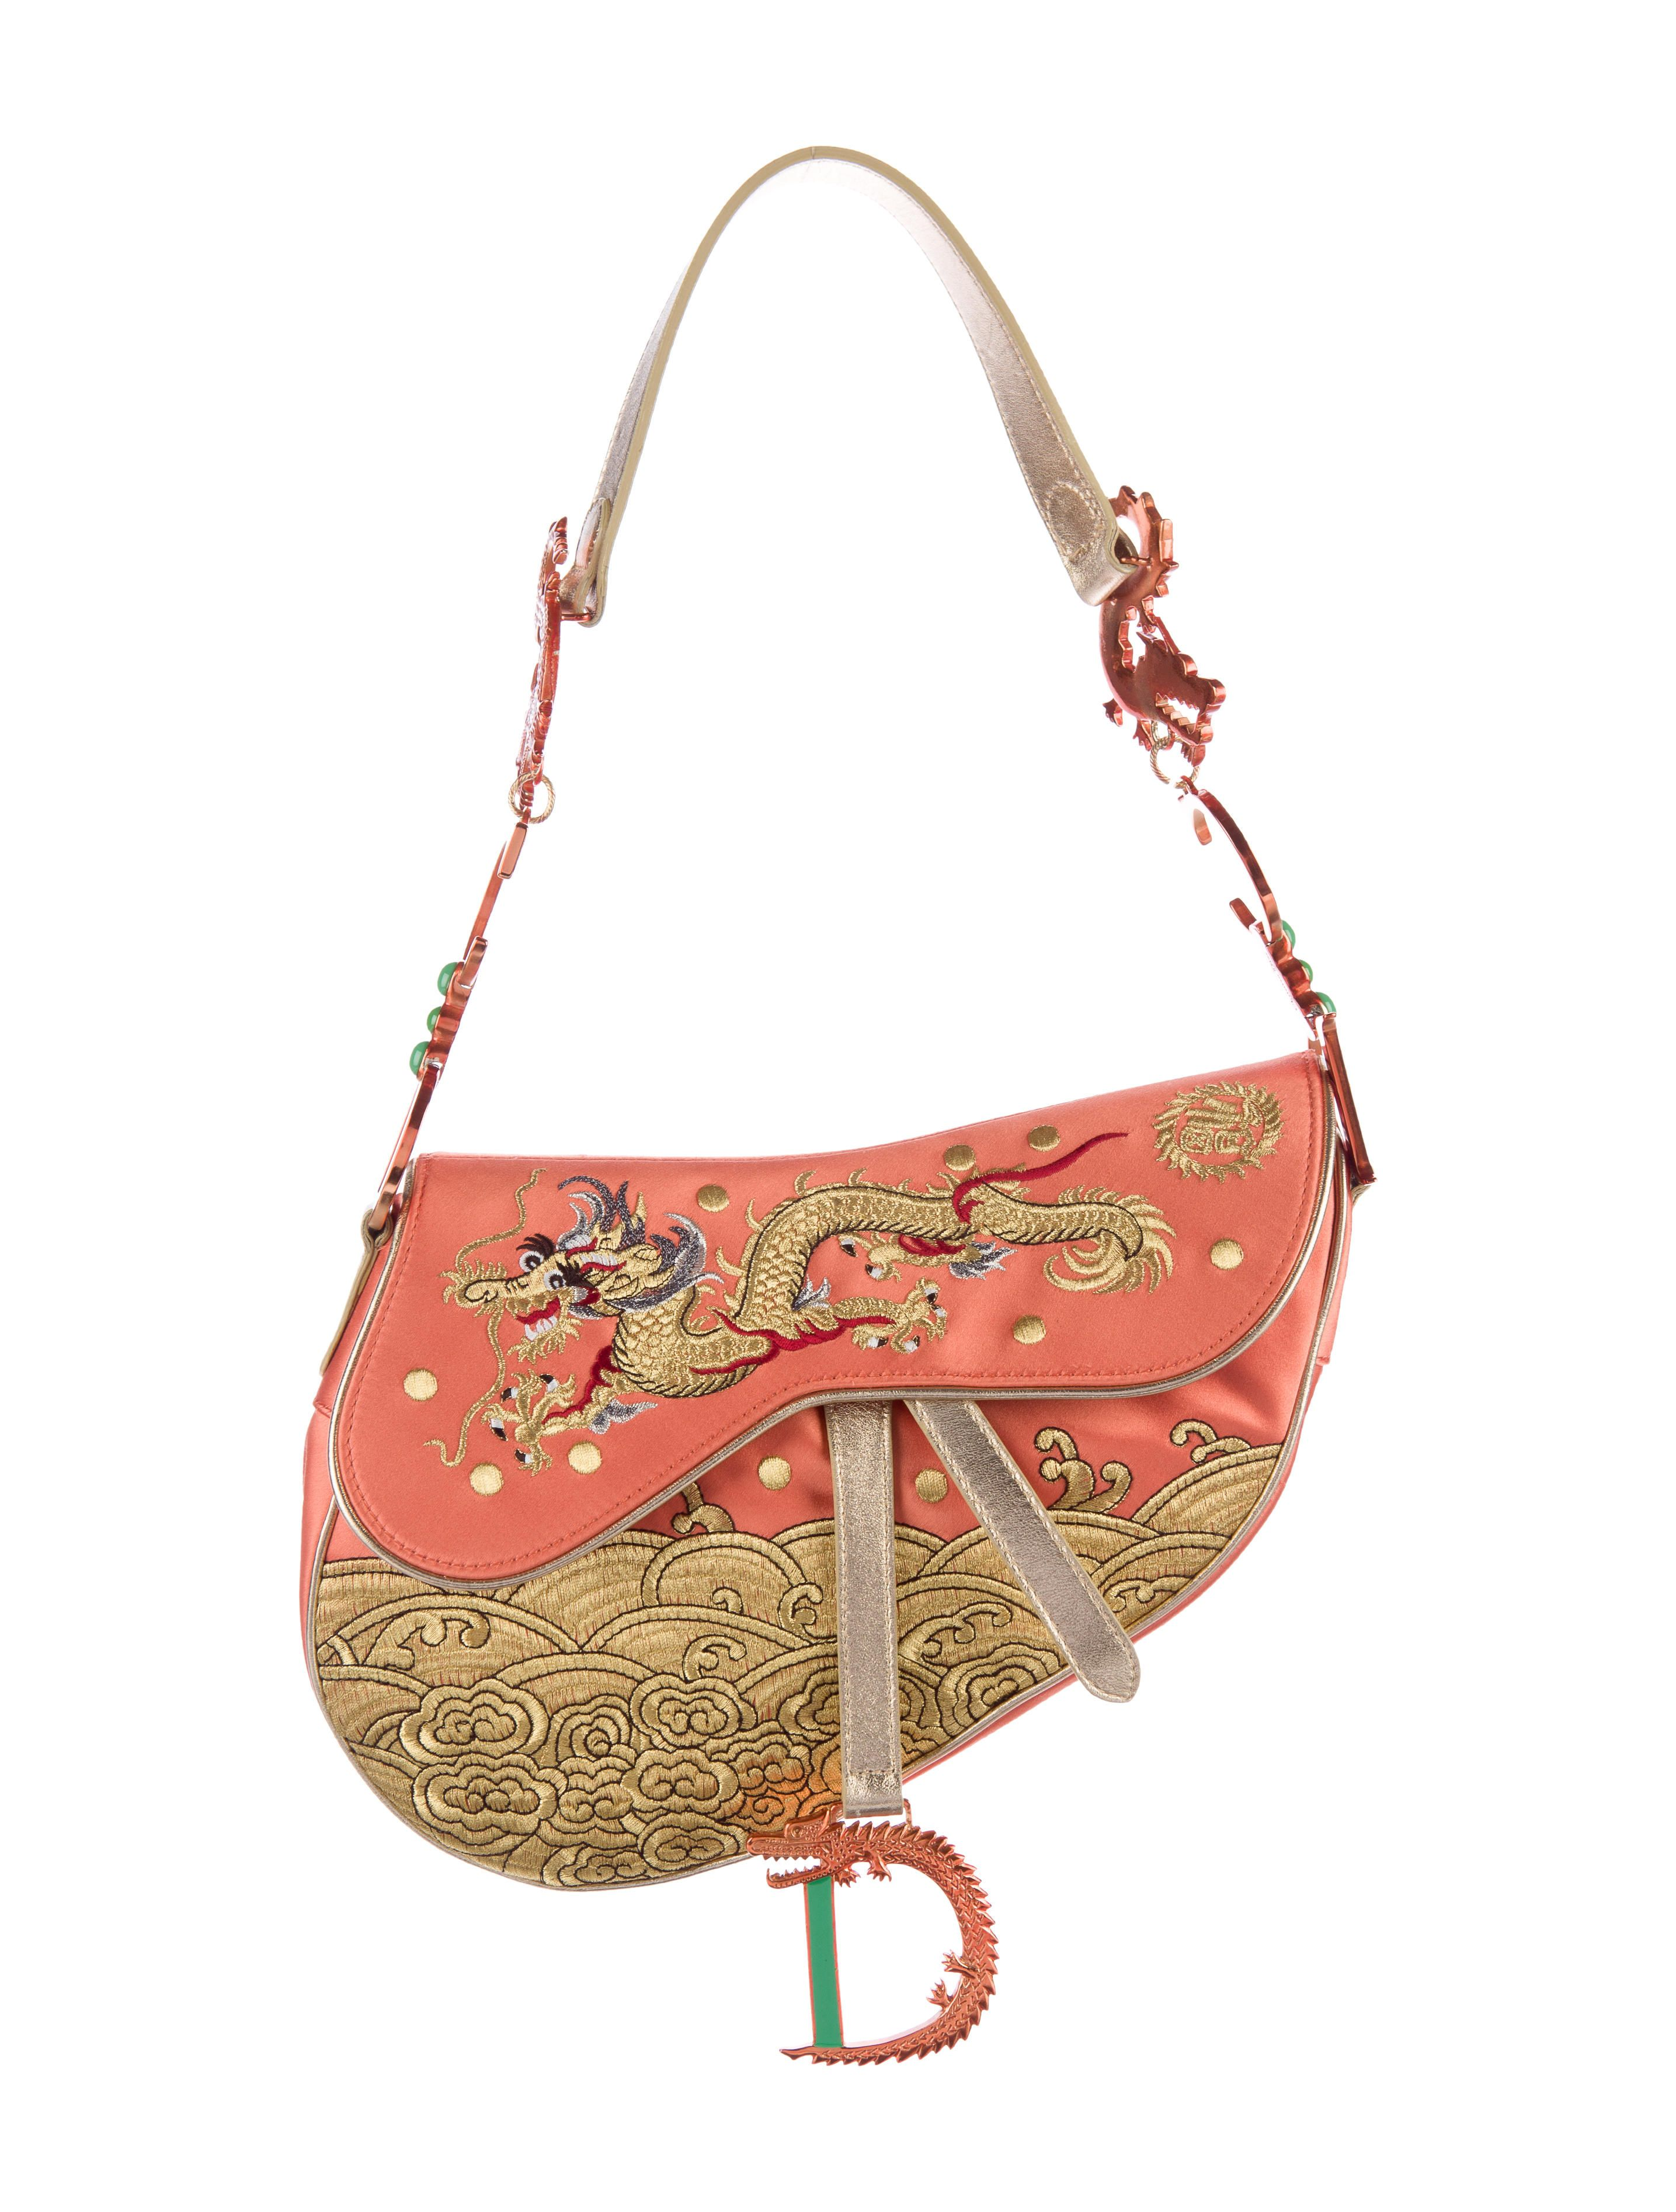 01b4c93100 Coral satin Christian Dior China Embroidered Saddle Bag with metallic  orange coated hardware